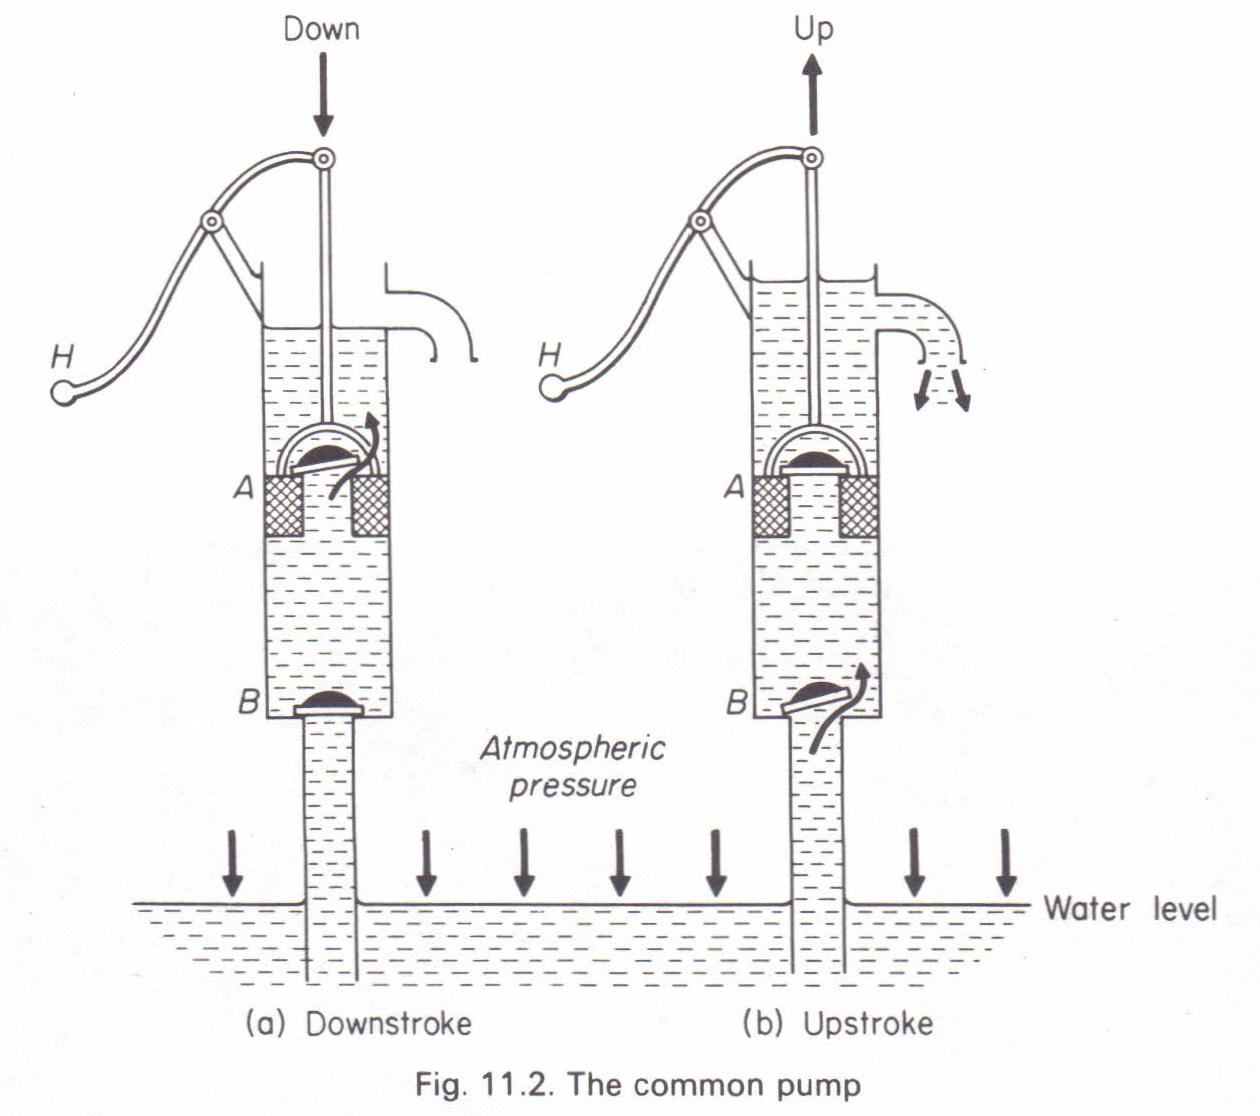 The Common Pump Lift Pump Physics Homework Help Physics Assignments And Projects Help